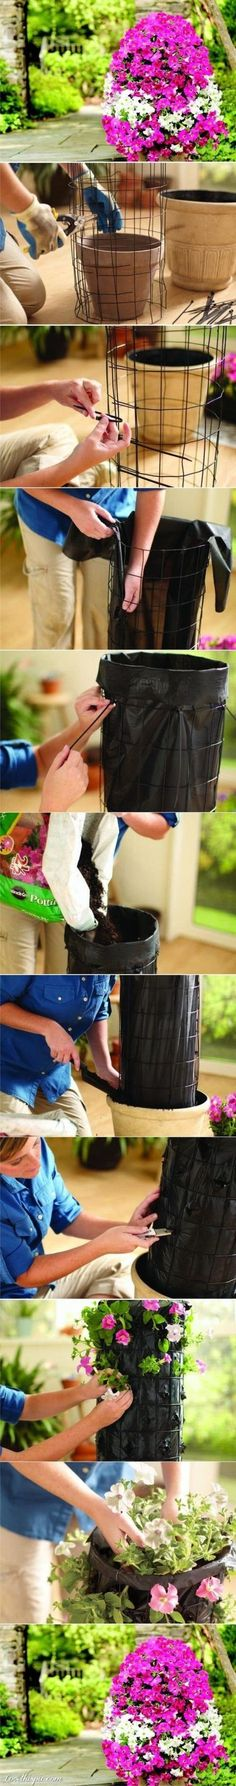 DIY Vertical Planter - lovethispic.com - Maceta vertical DIY